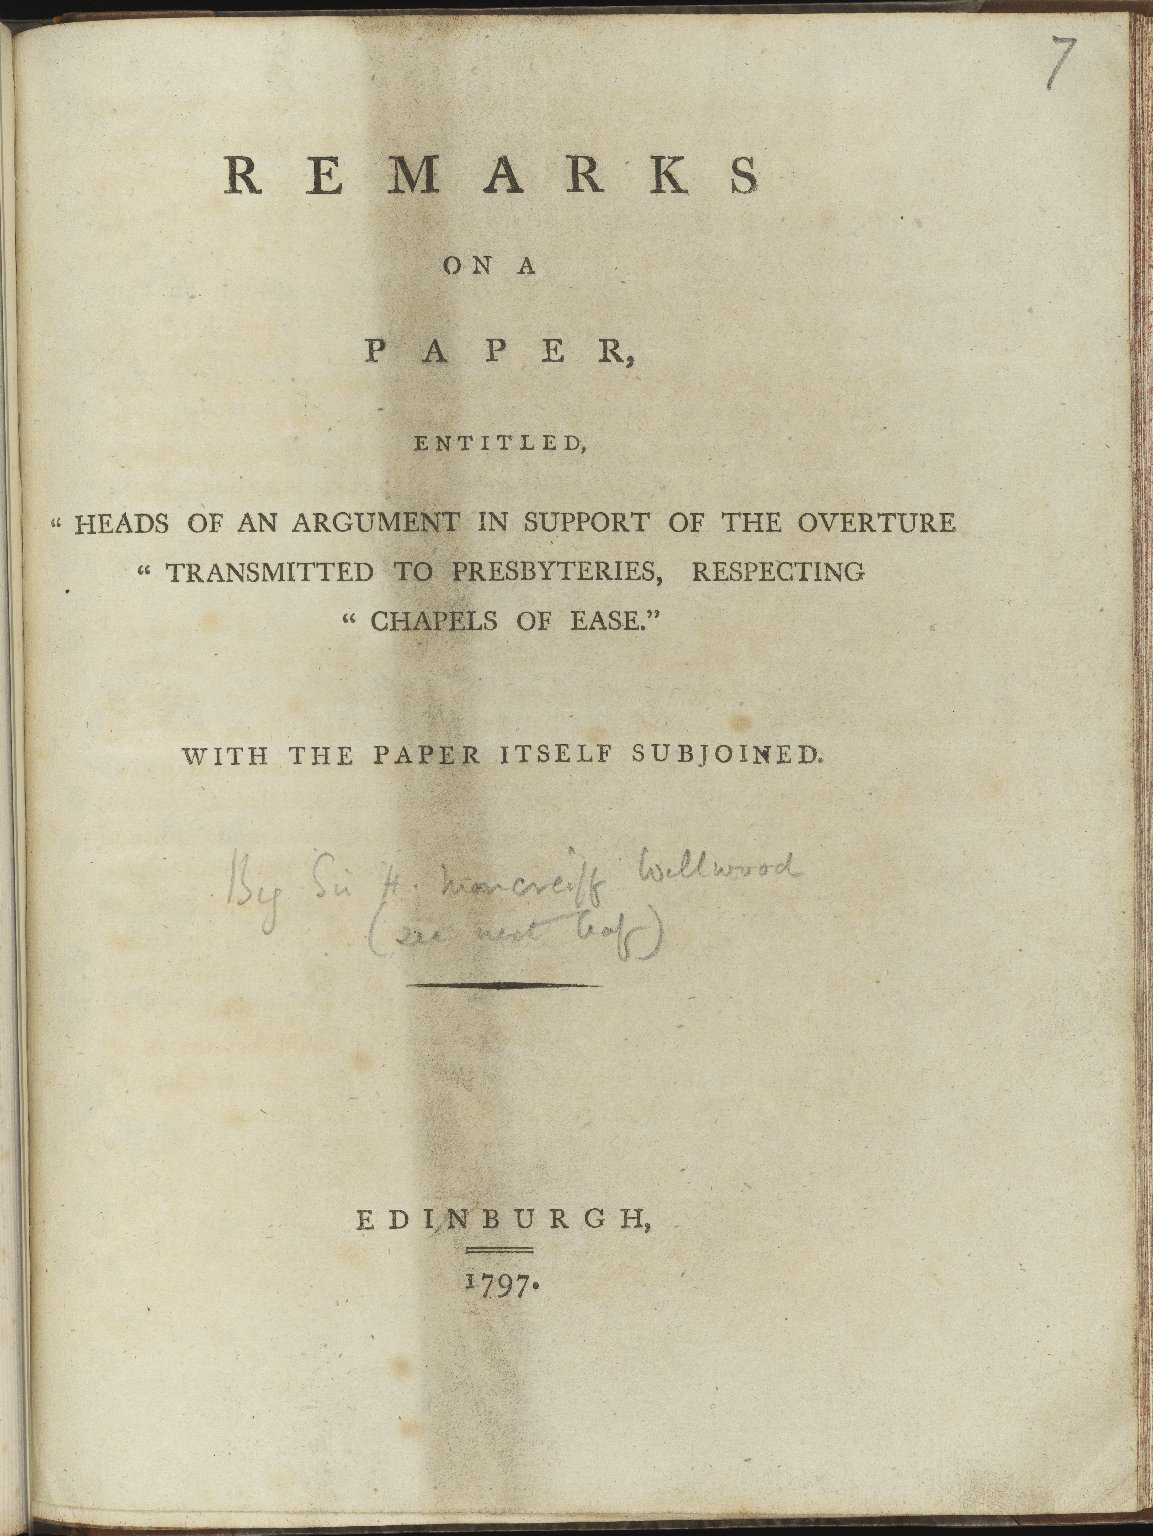 Remarks on a Paper, Entitled, â??Heads of an Argumentâ?, 1797, Pamphlet 7, title page